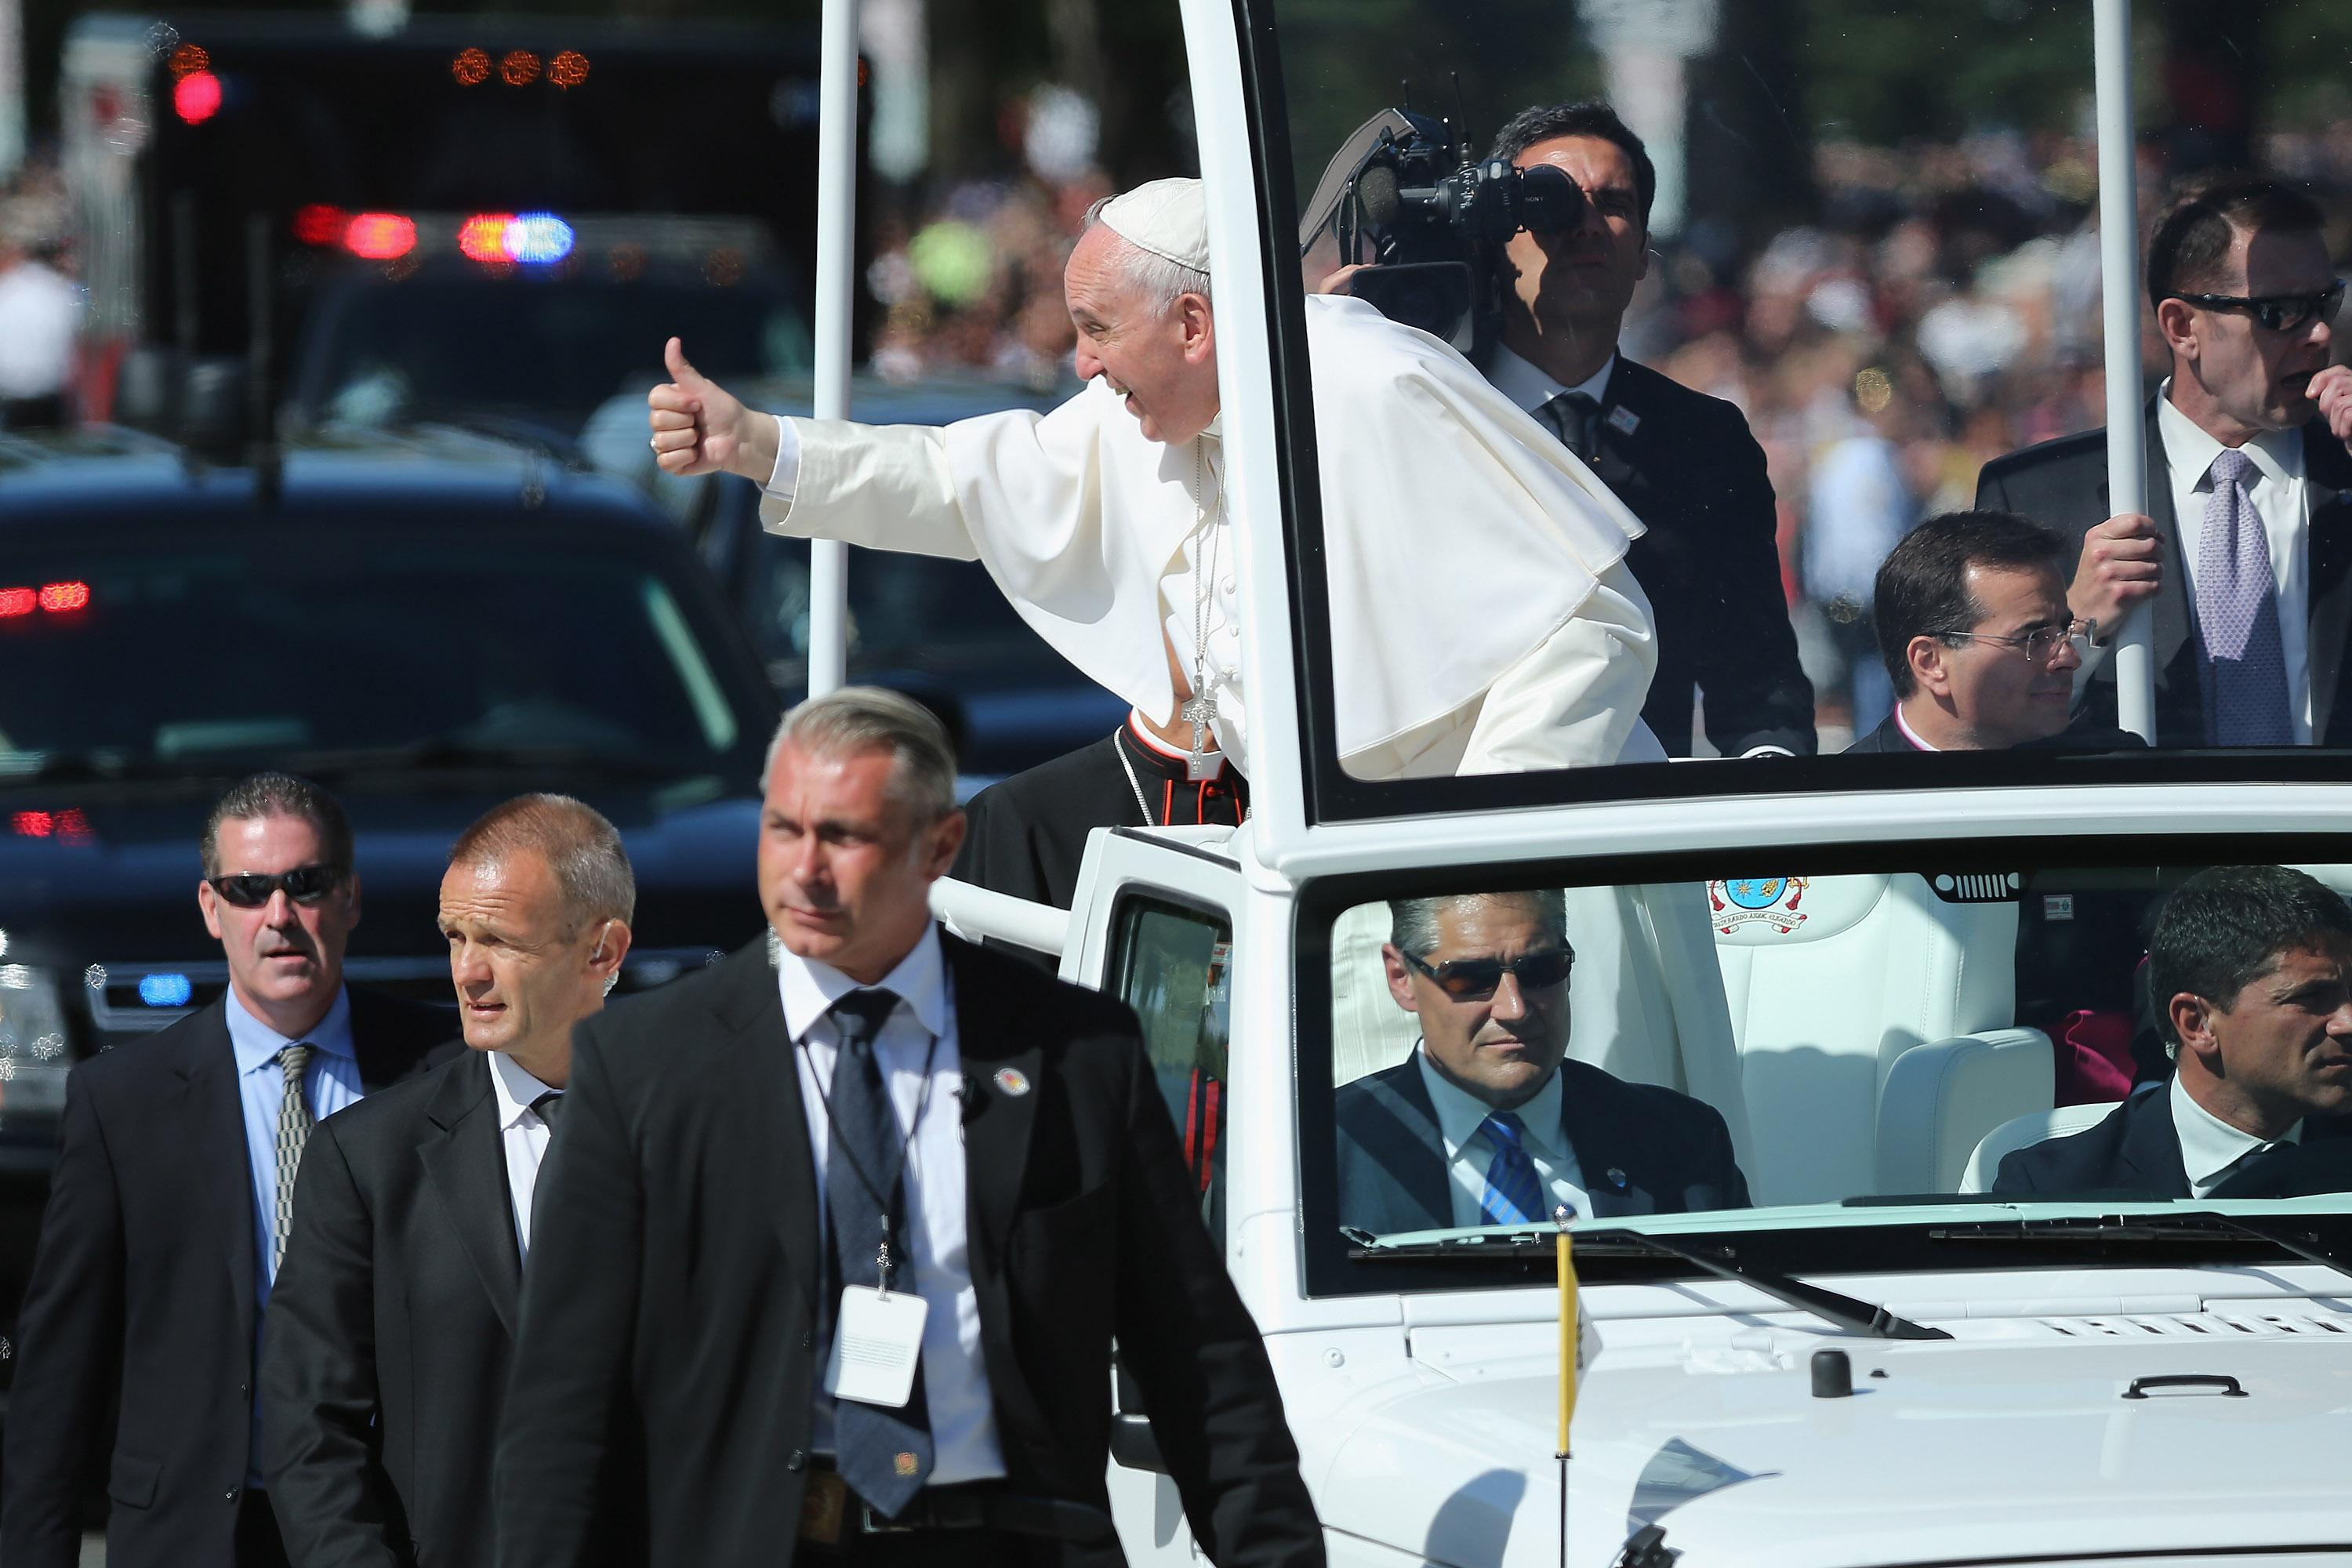 Pope Francis in Jeep National Mall